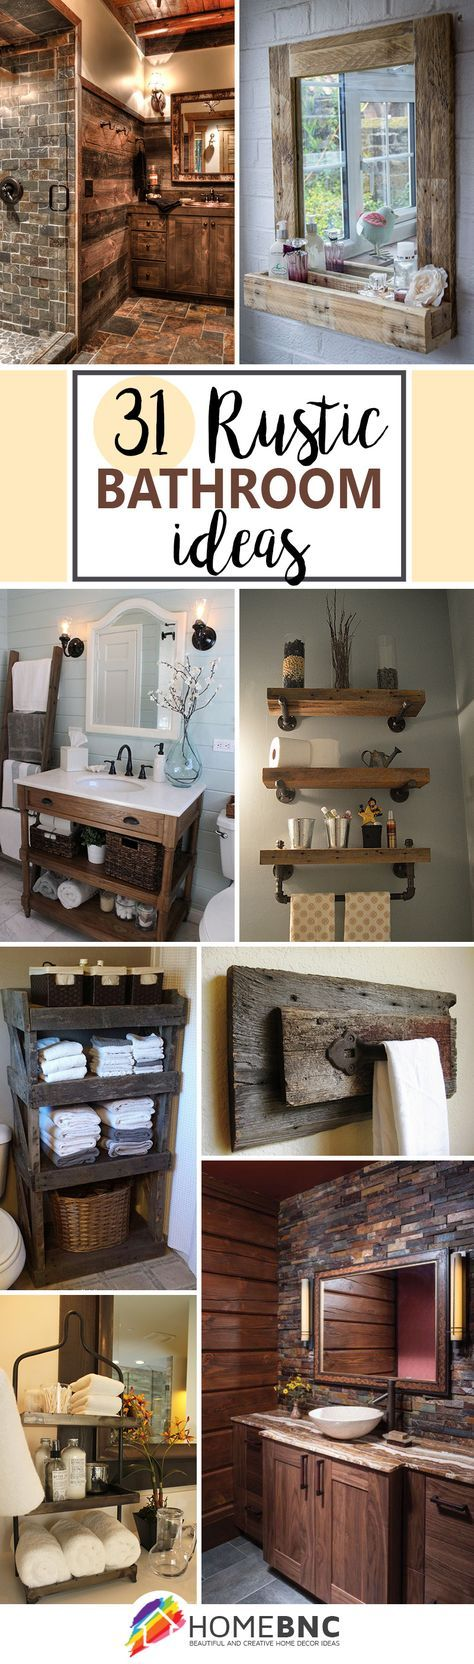 31 Gorgeous Rustic Bathroom Decor Ideas To Try At Home Bathroom Design Decor Rustic Bathrooms Rustic Bathroom Decor